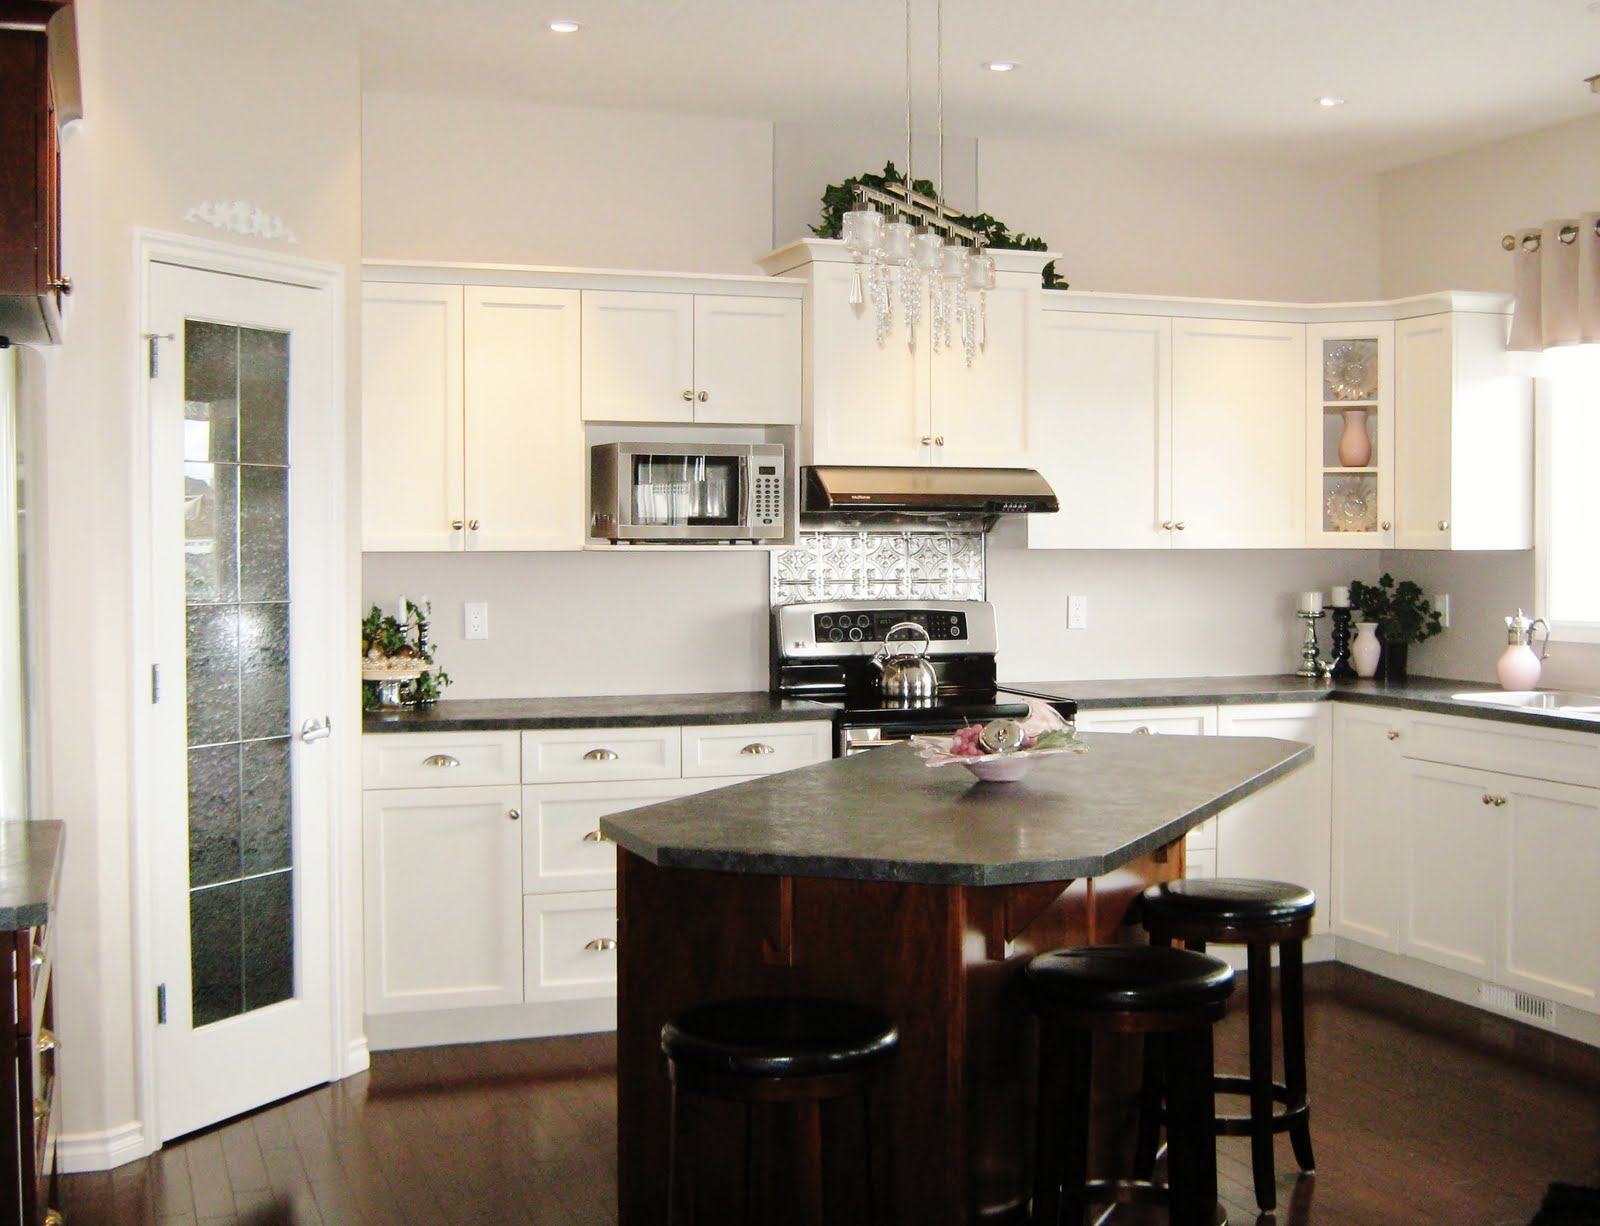 How to create a stylish kitchen in a small space How to make space in a small kitchen